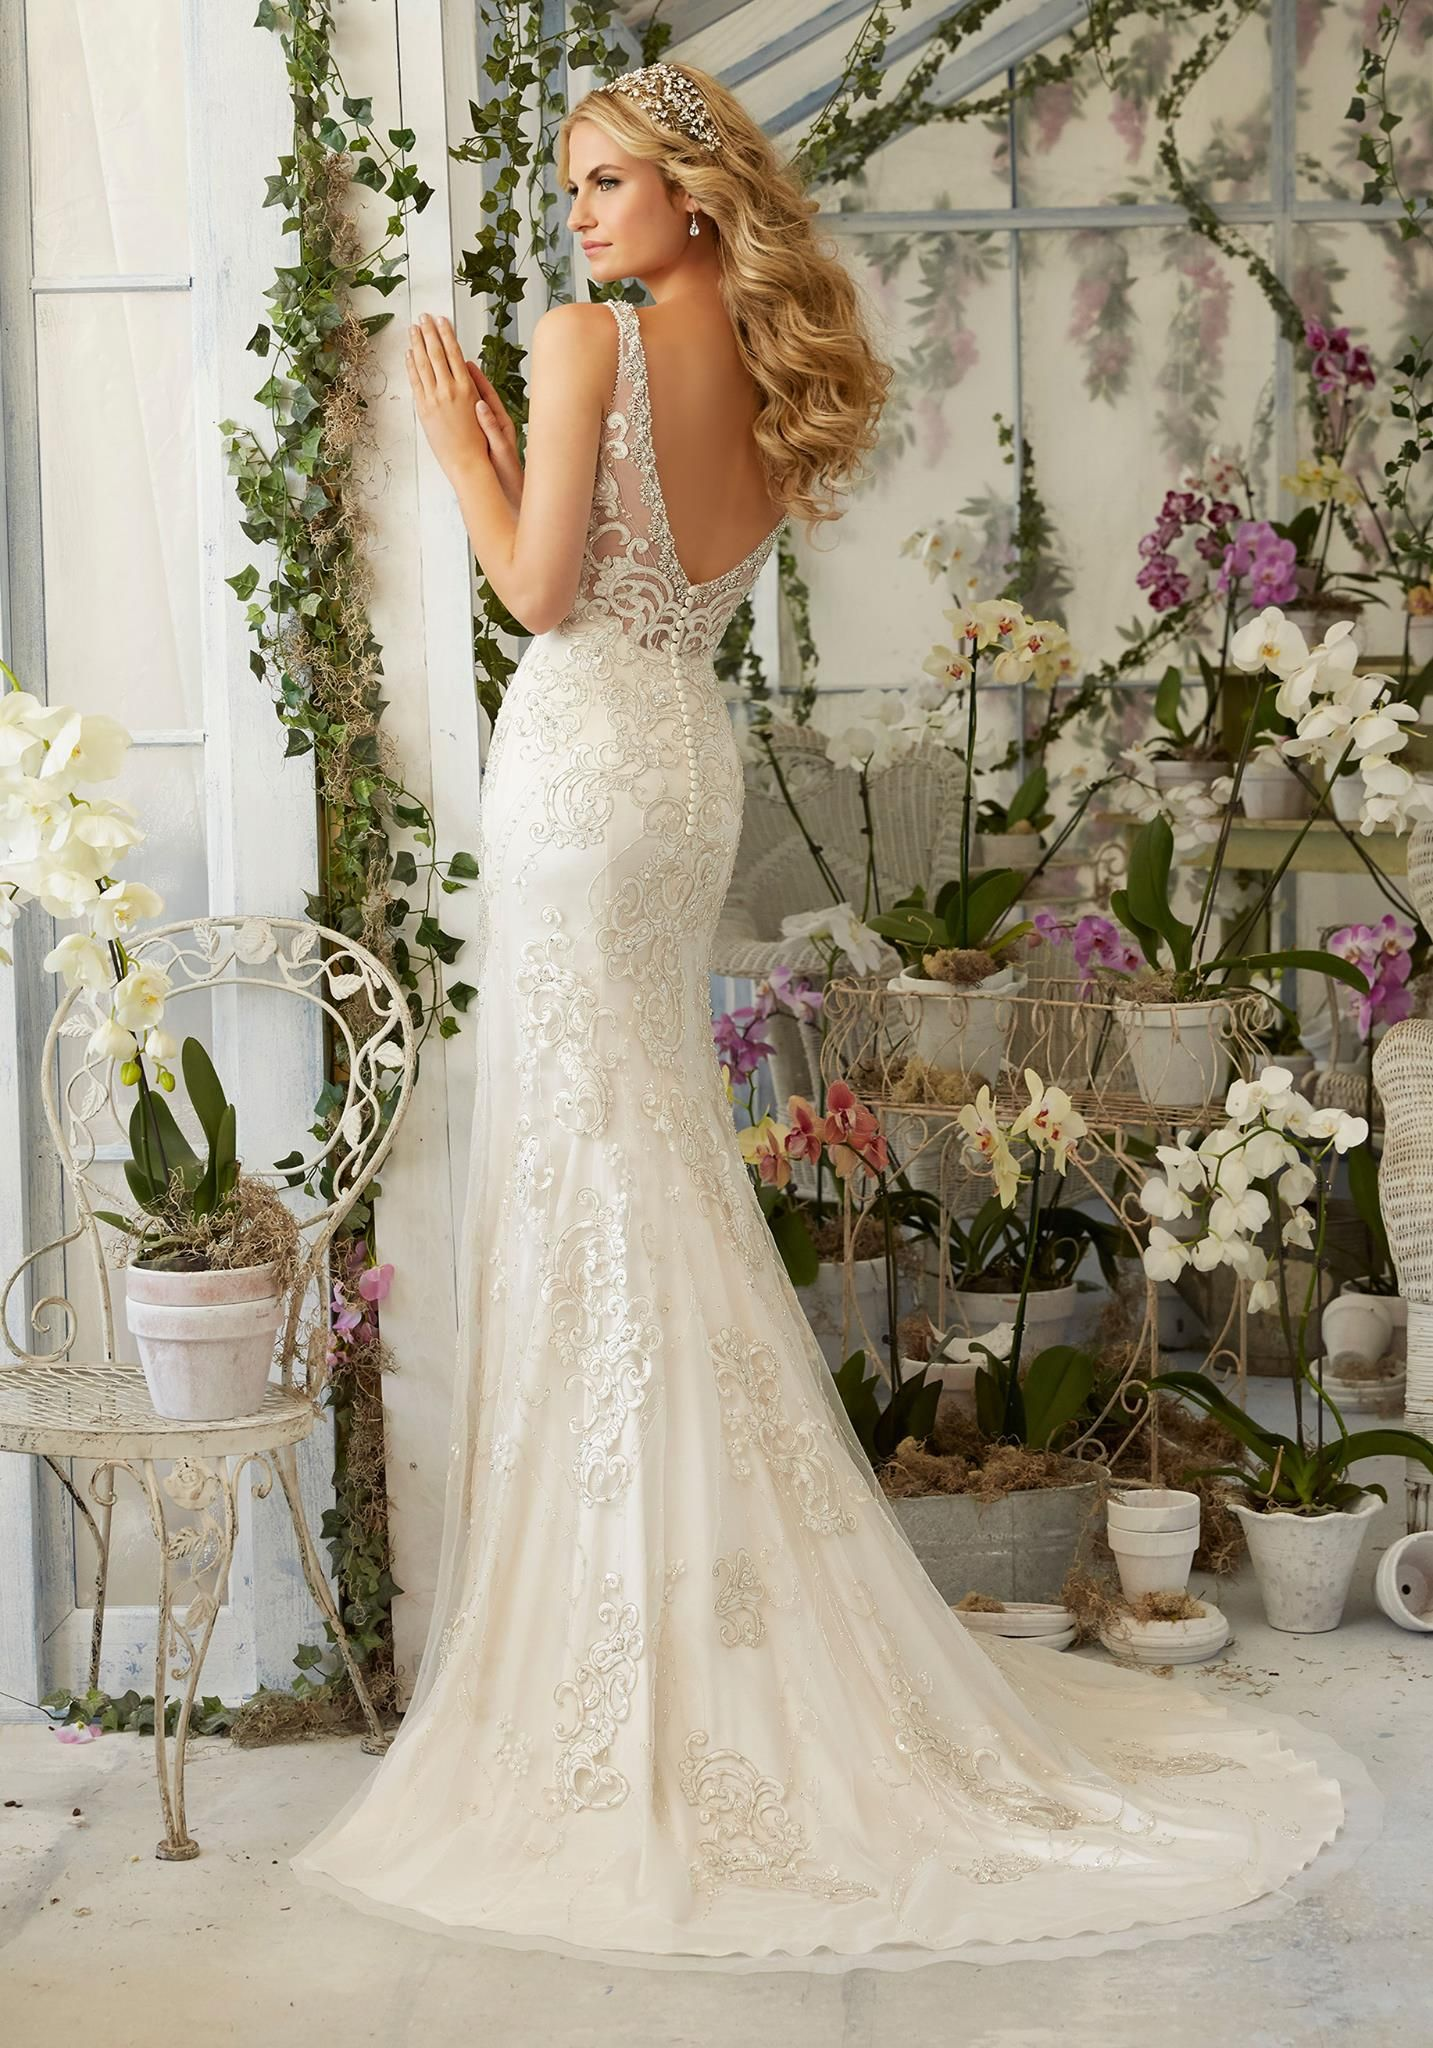 Beth carter bridal e huntingburg in